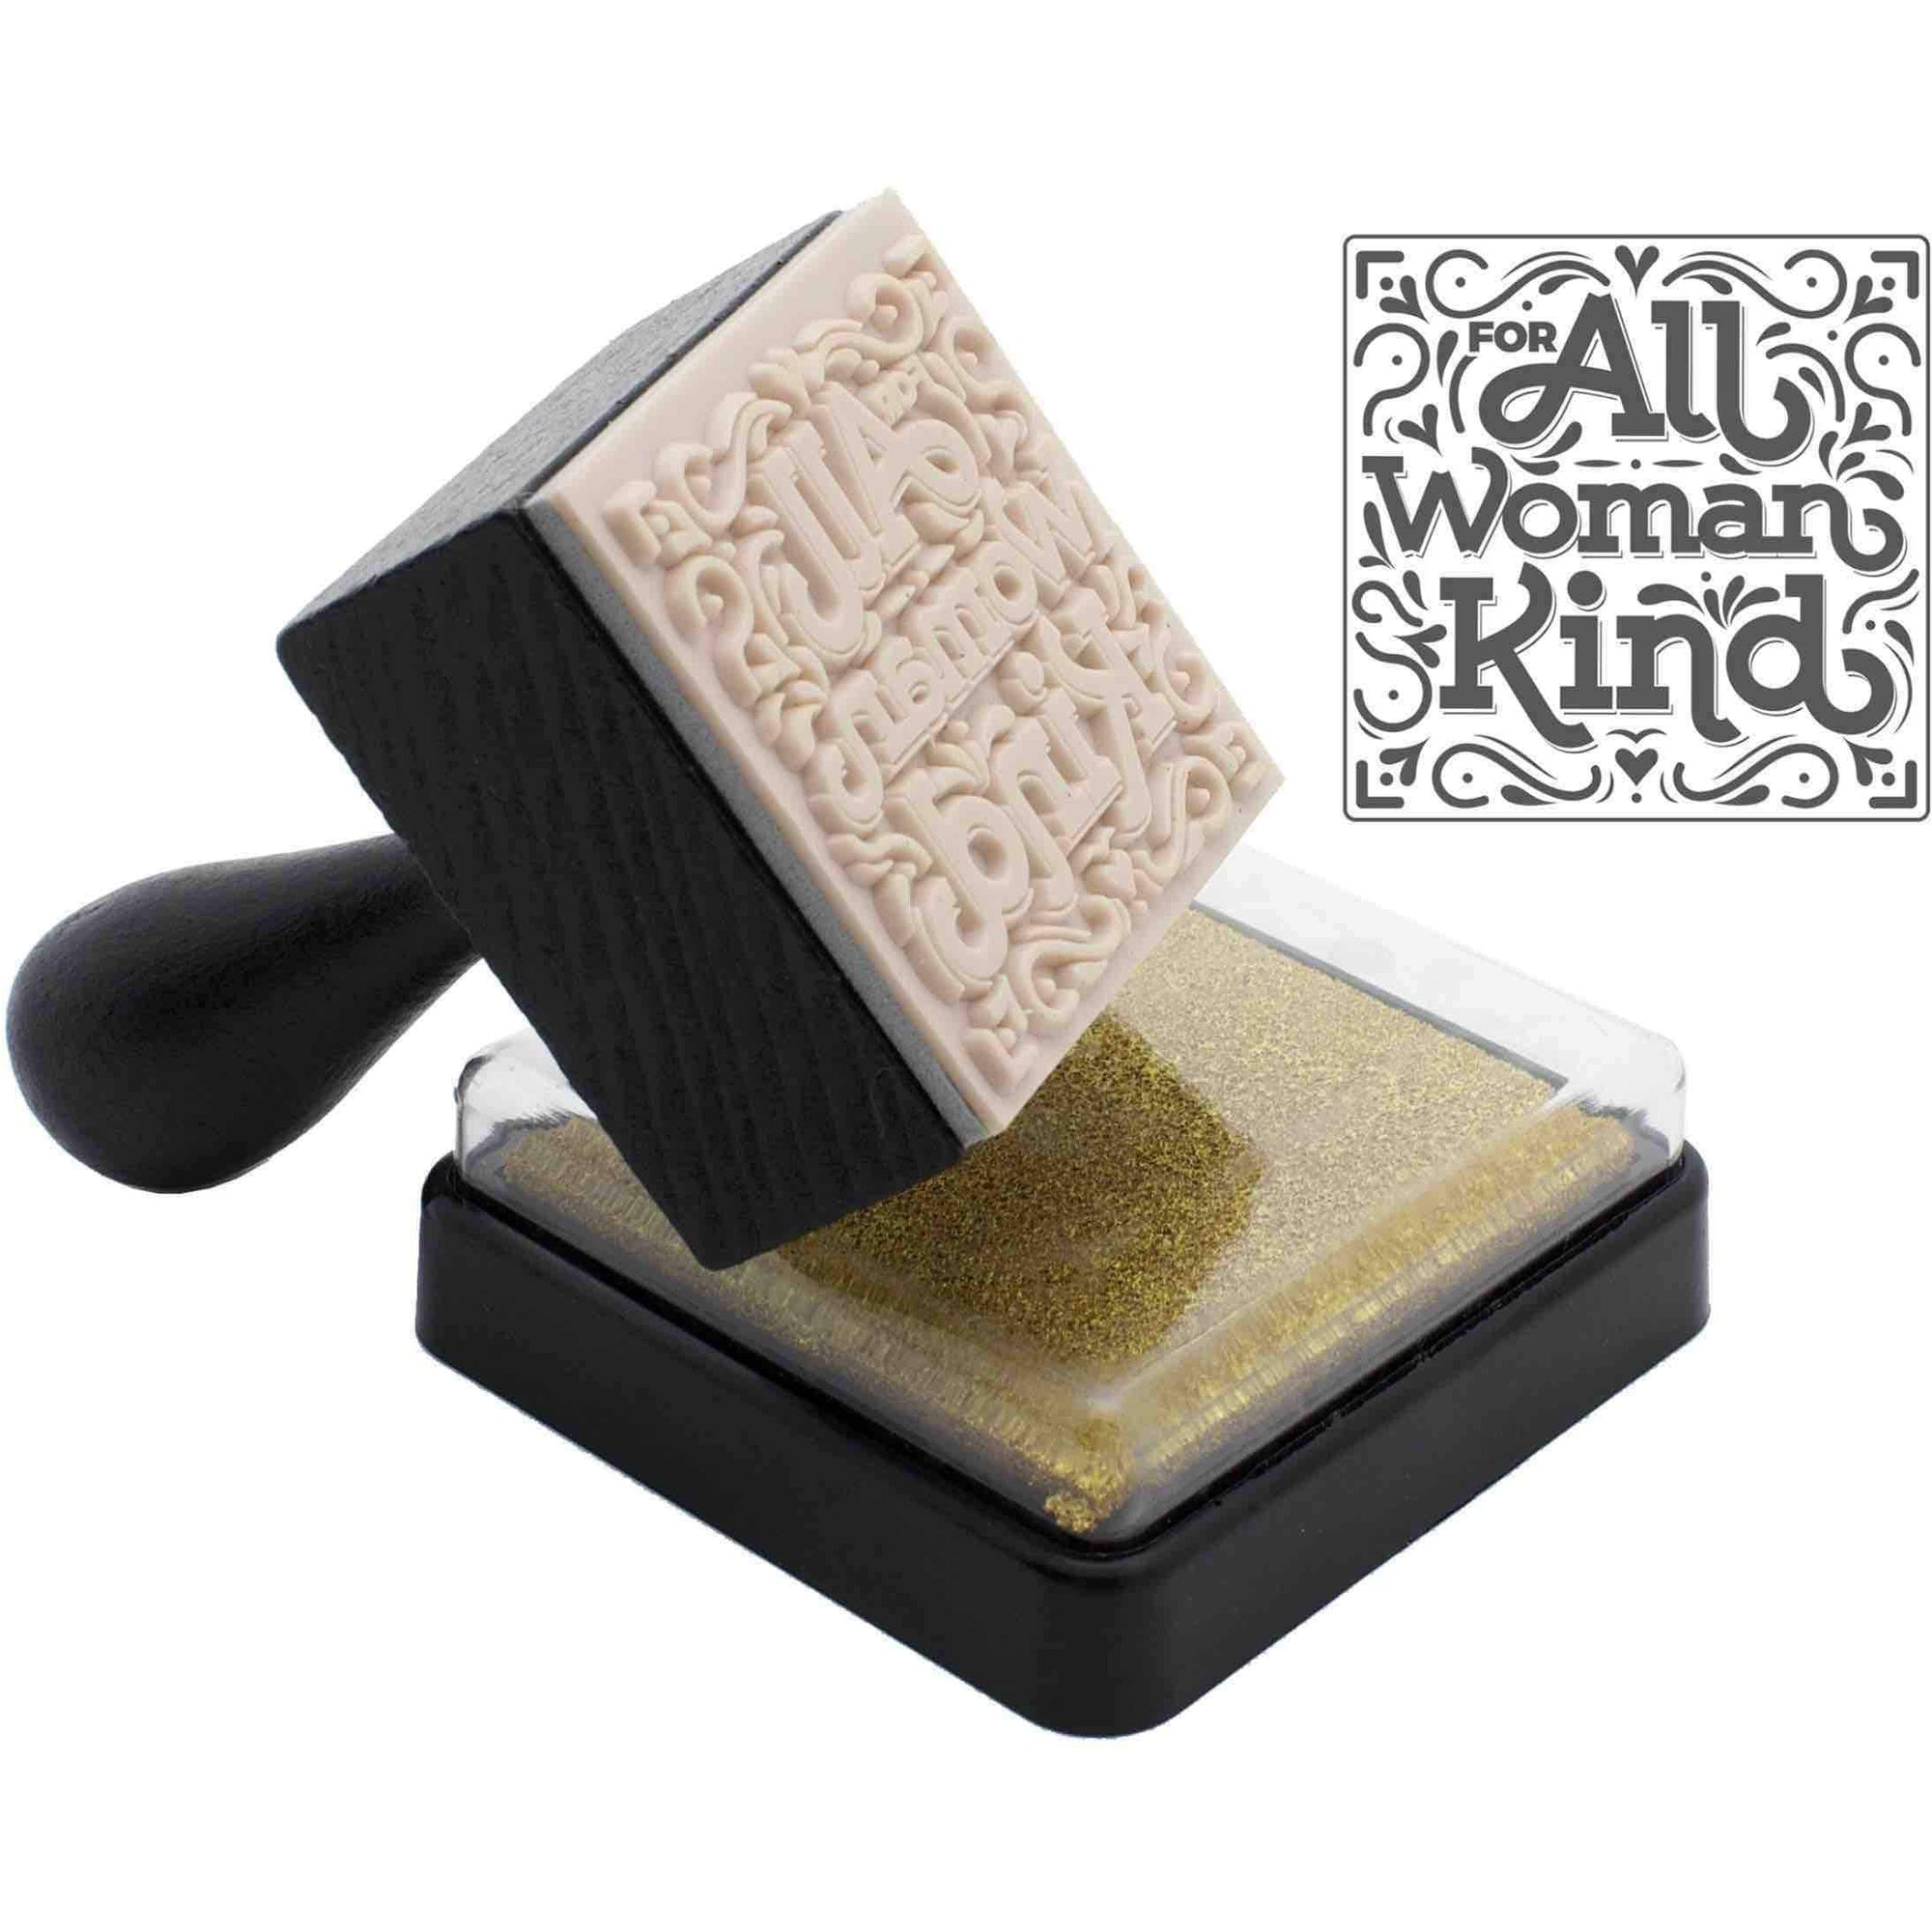 Karma Kiss All Women Kind Stamper Empowering Stamper